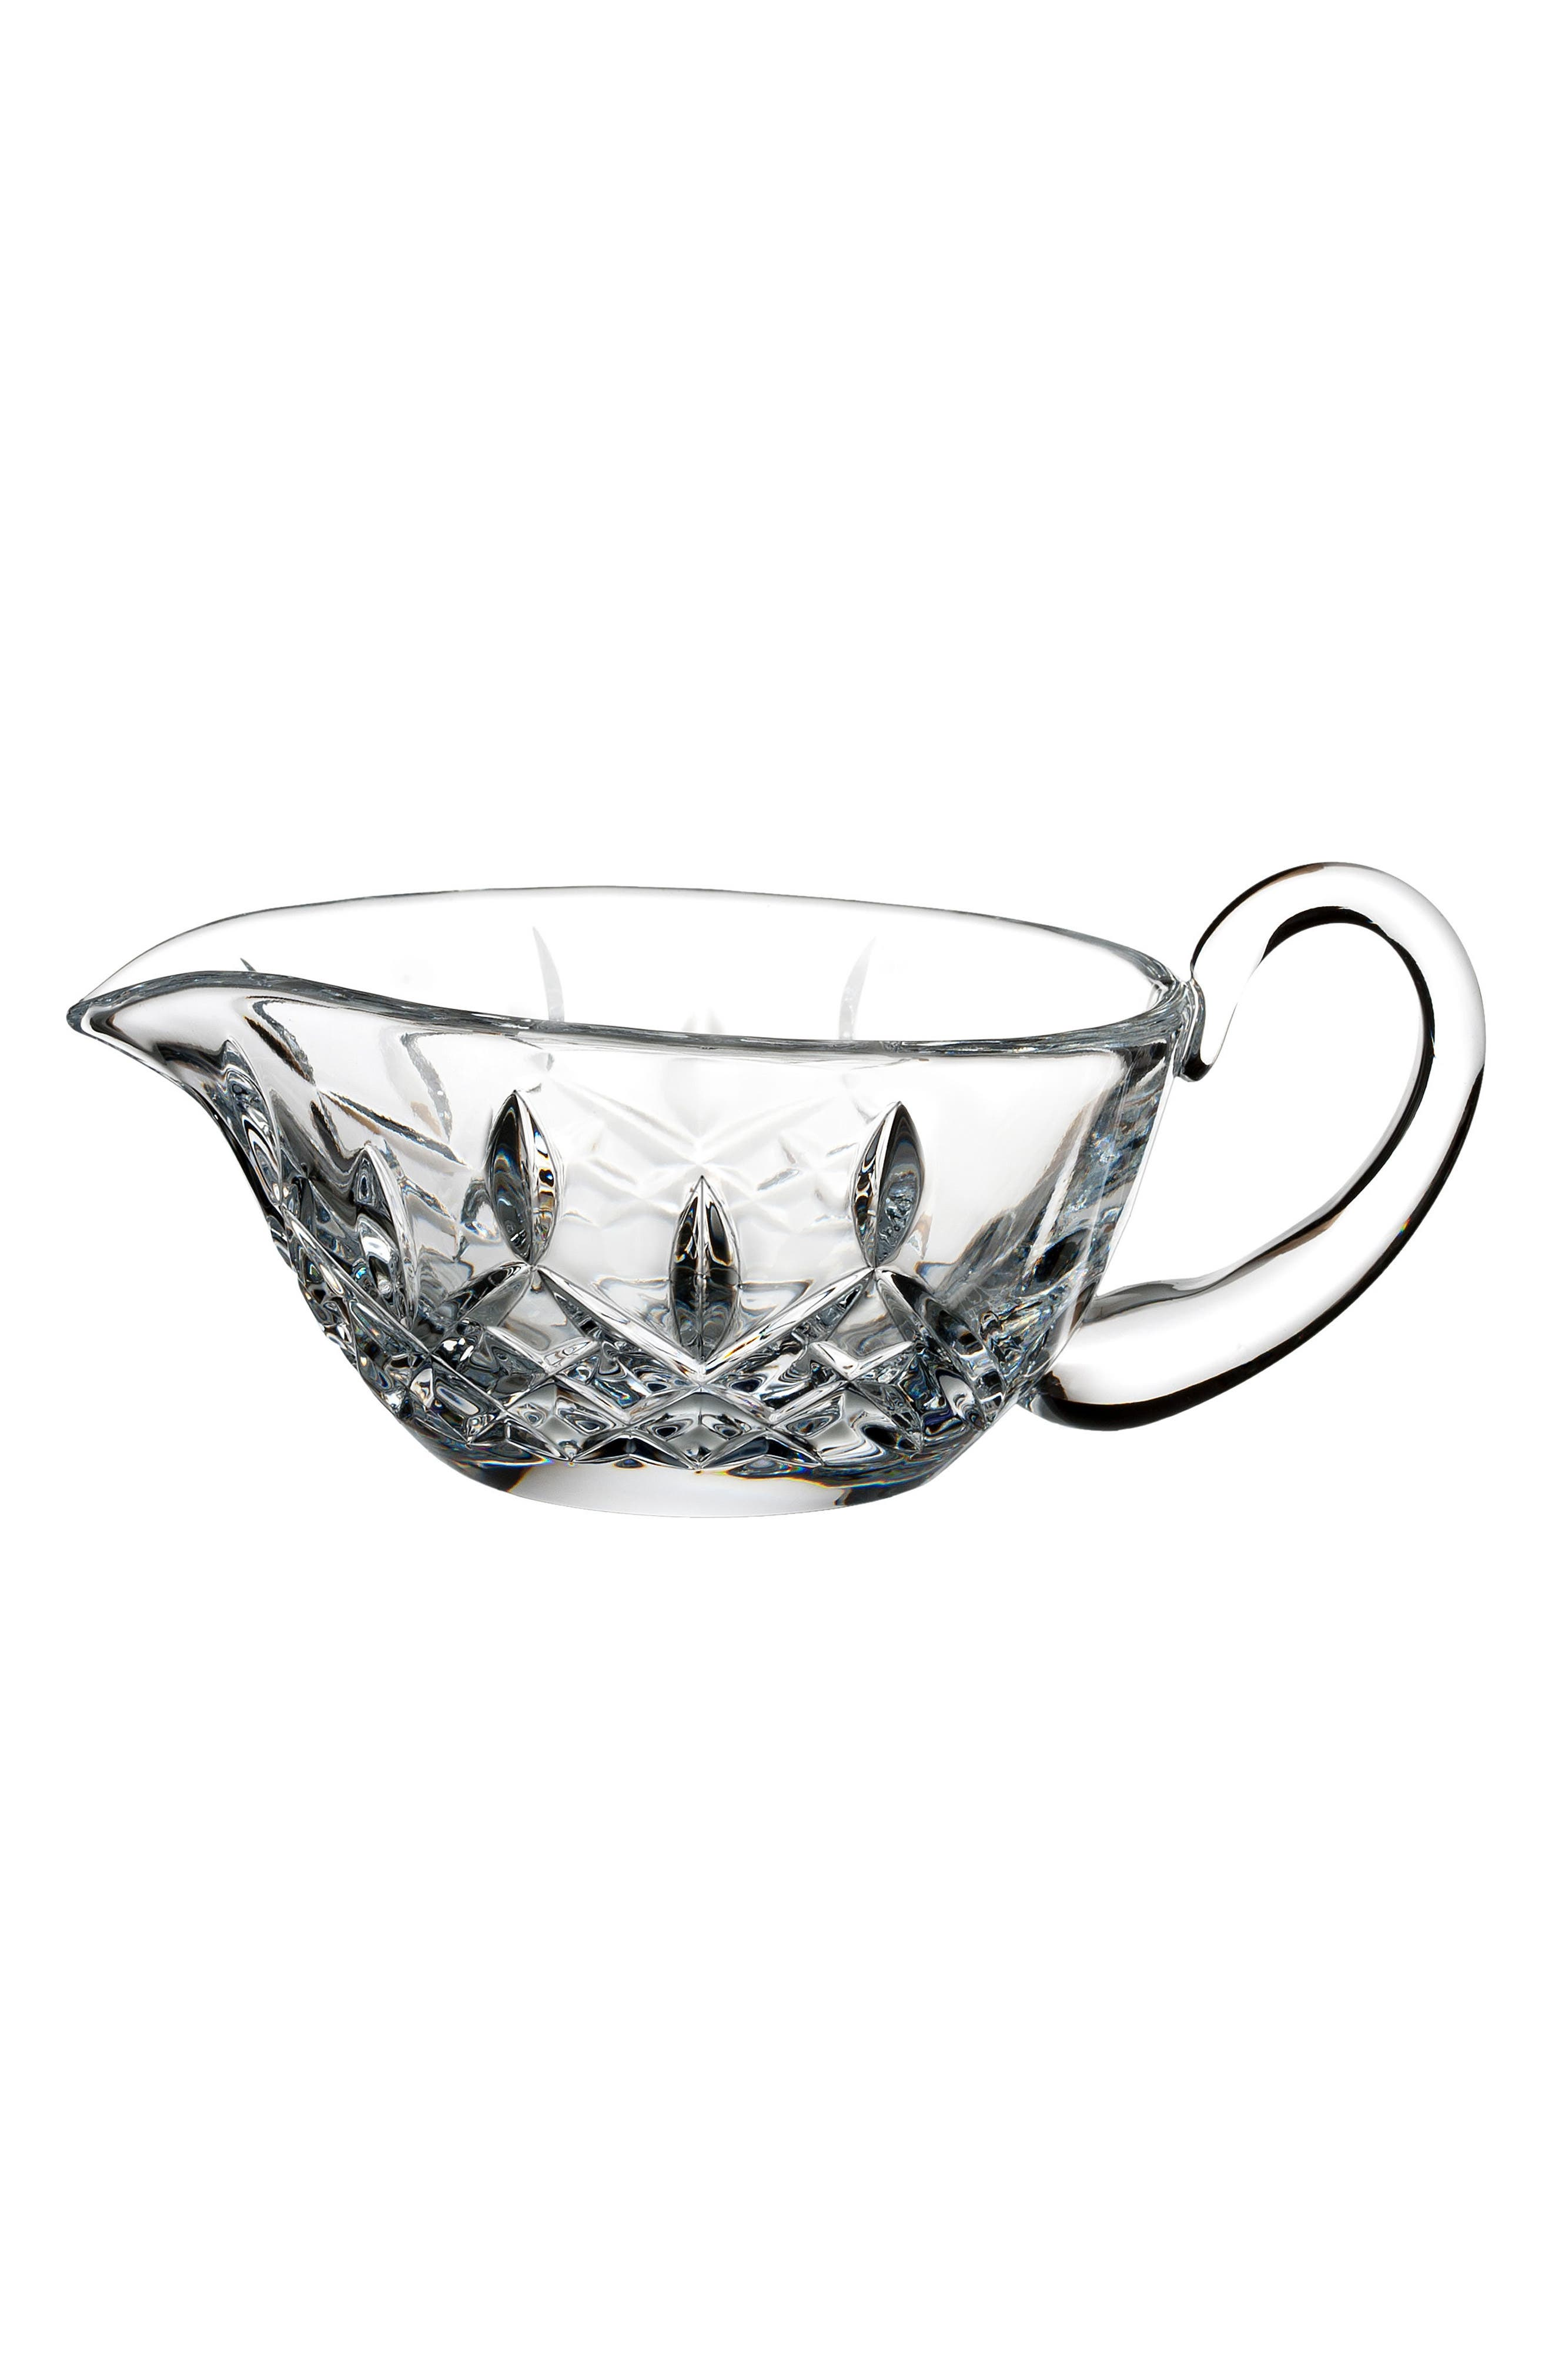 Main Image - Waterford Lismore Lead Crystal Gravy Server